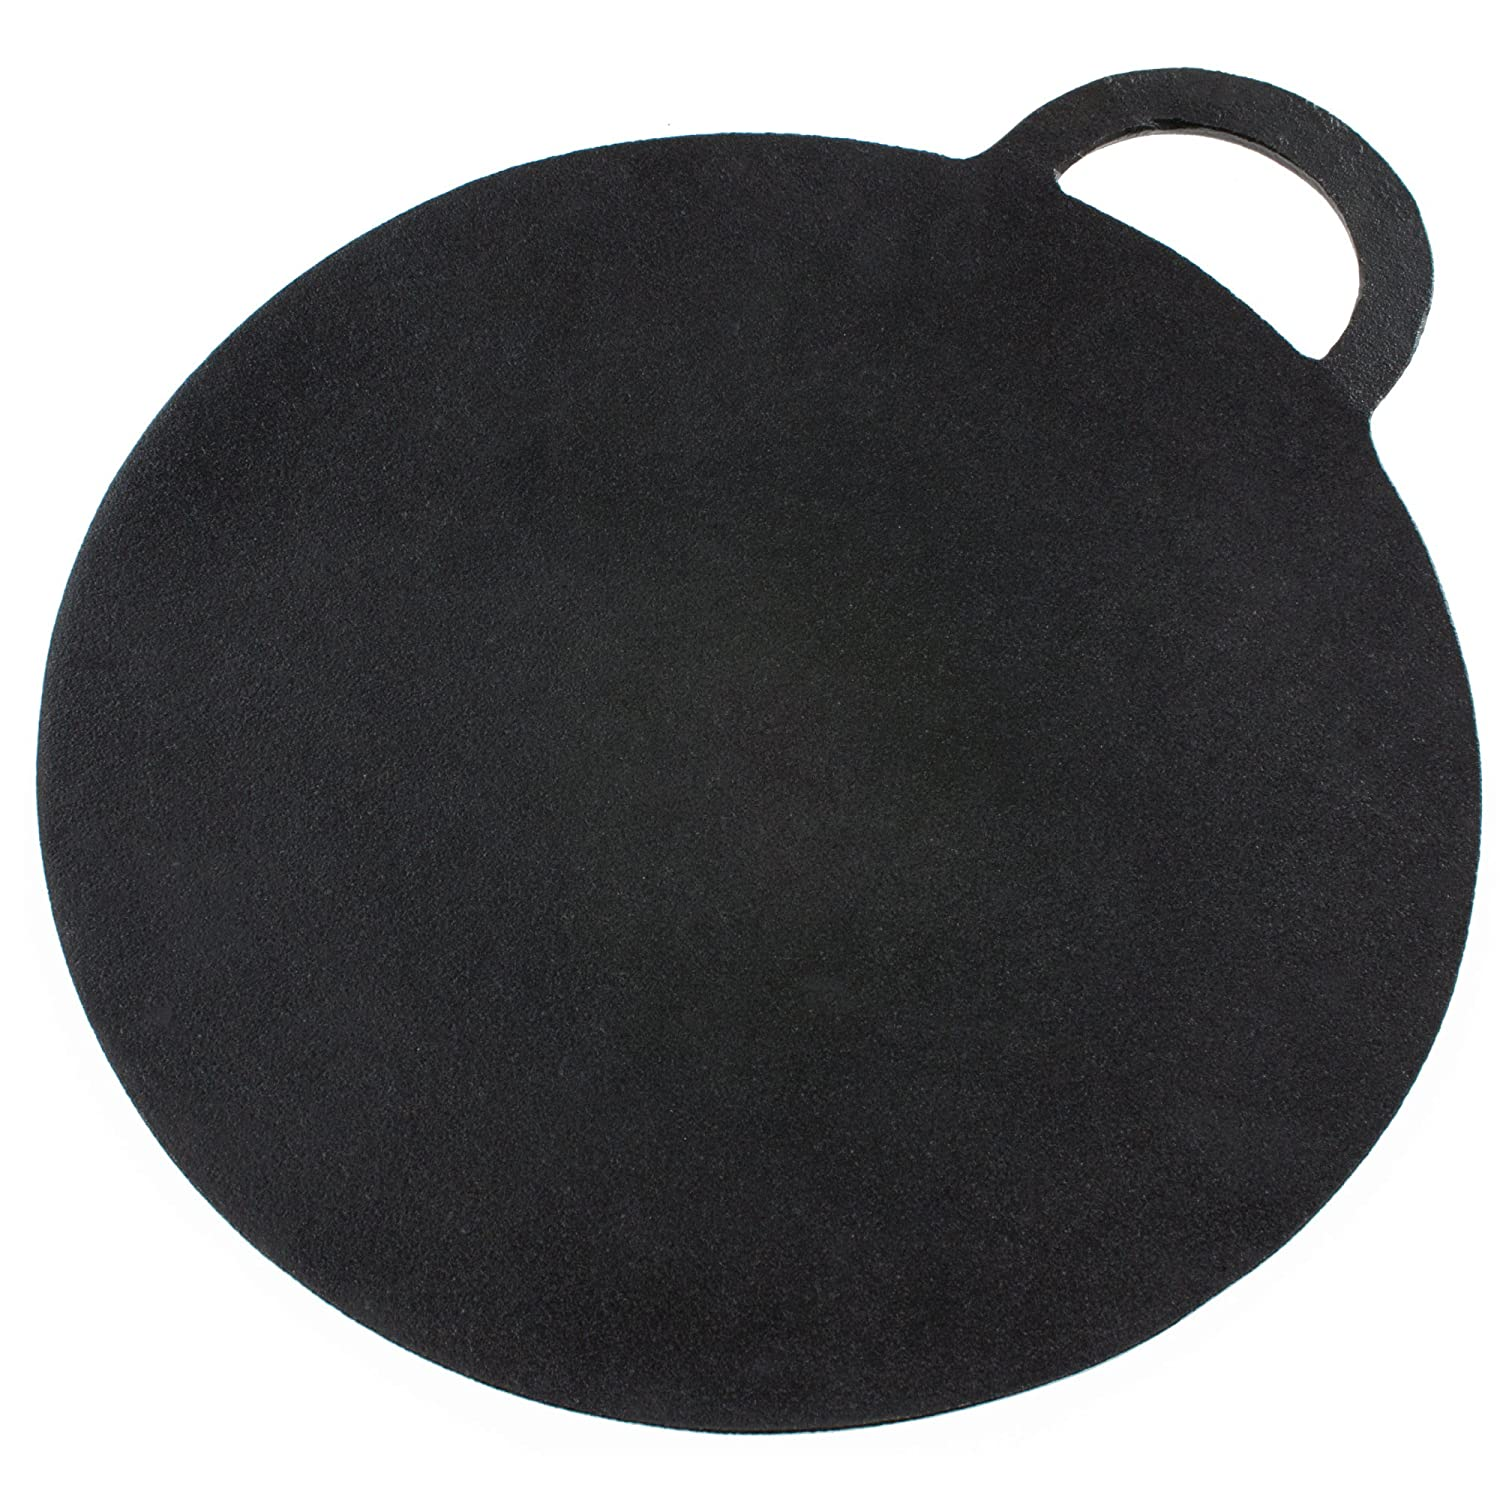 Andrew James Baking Stone Cast Iron | Suitable for Pizza Bread Scones and Pancakes etc. | 30cm Diameter | Pre-Seasoned Non-Stick Surface